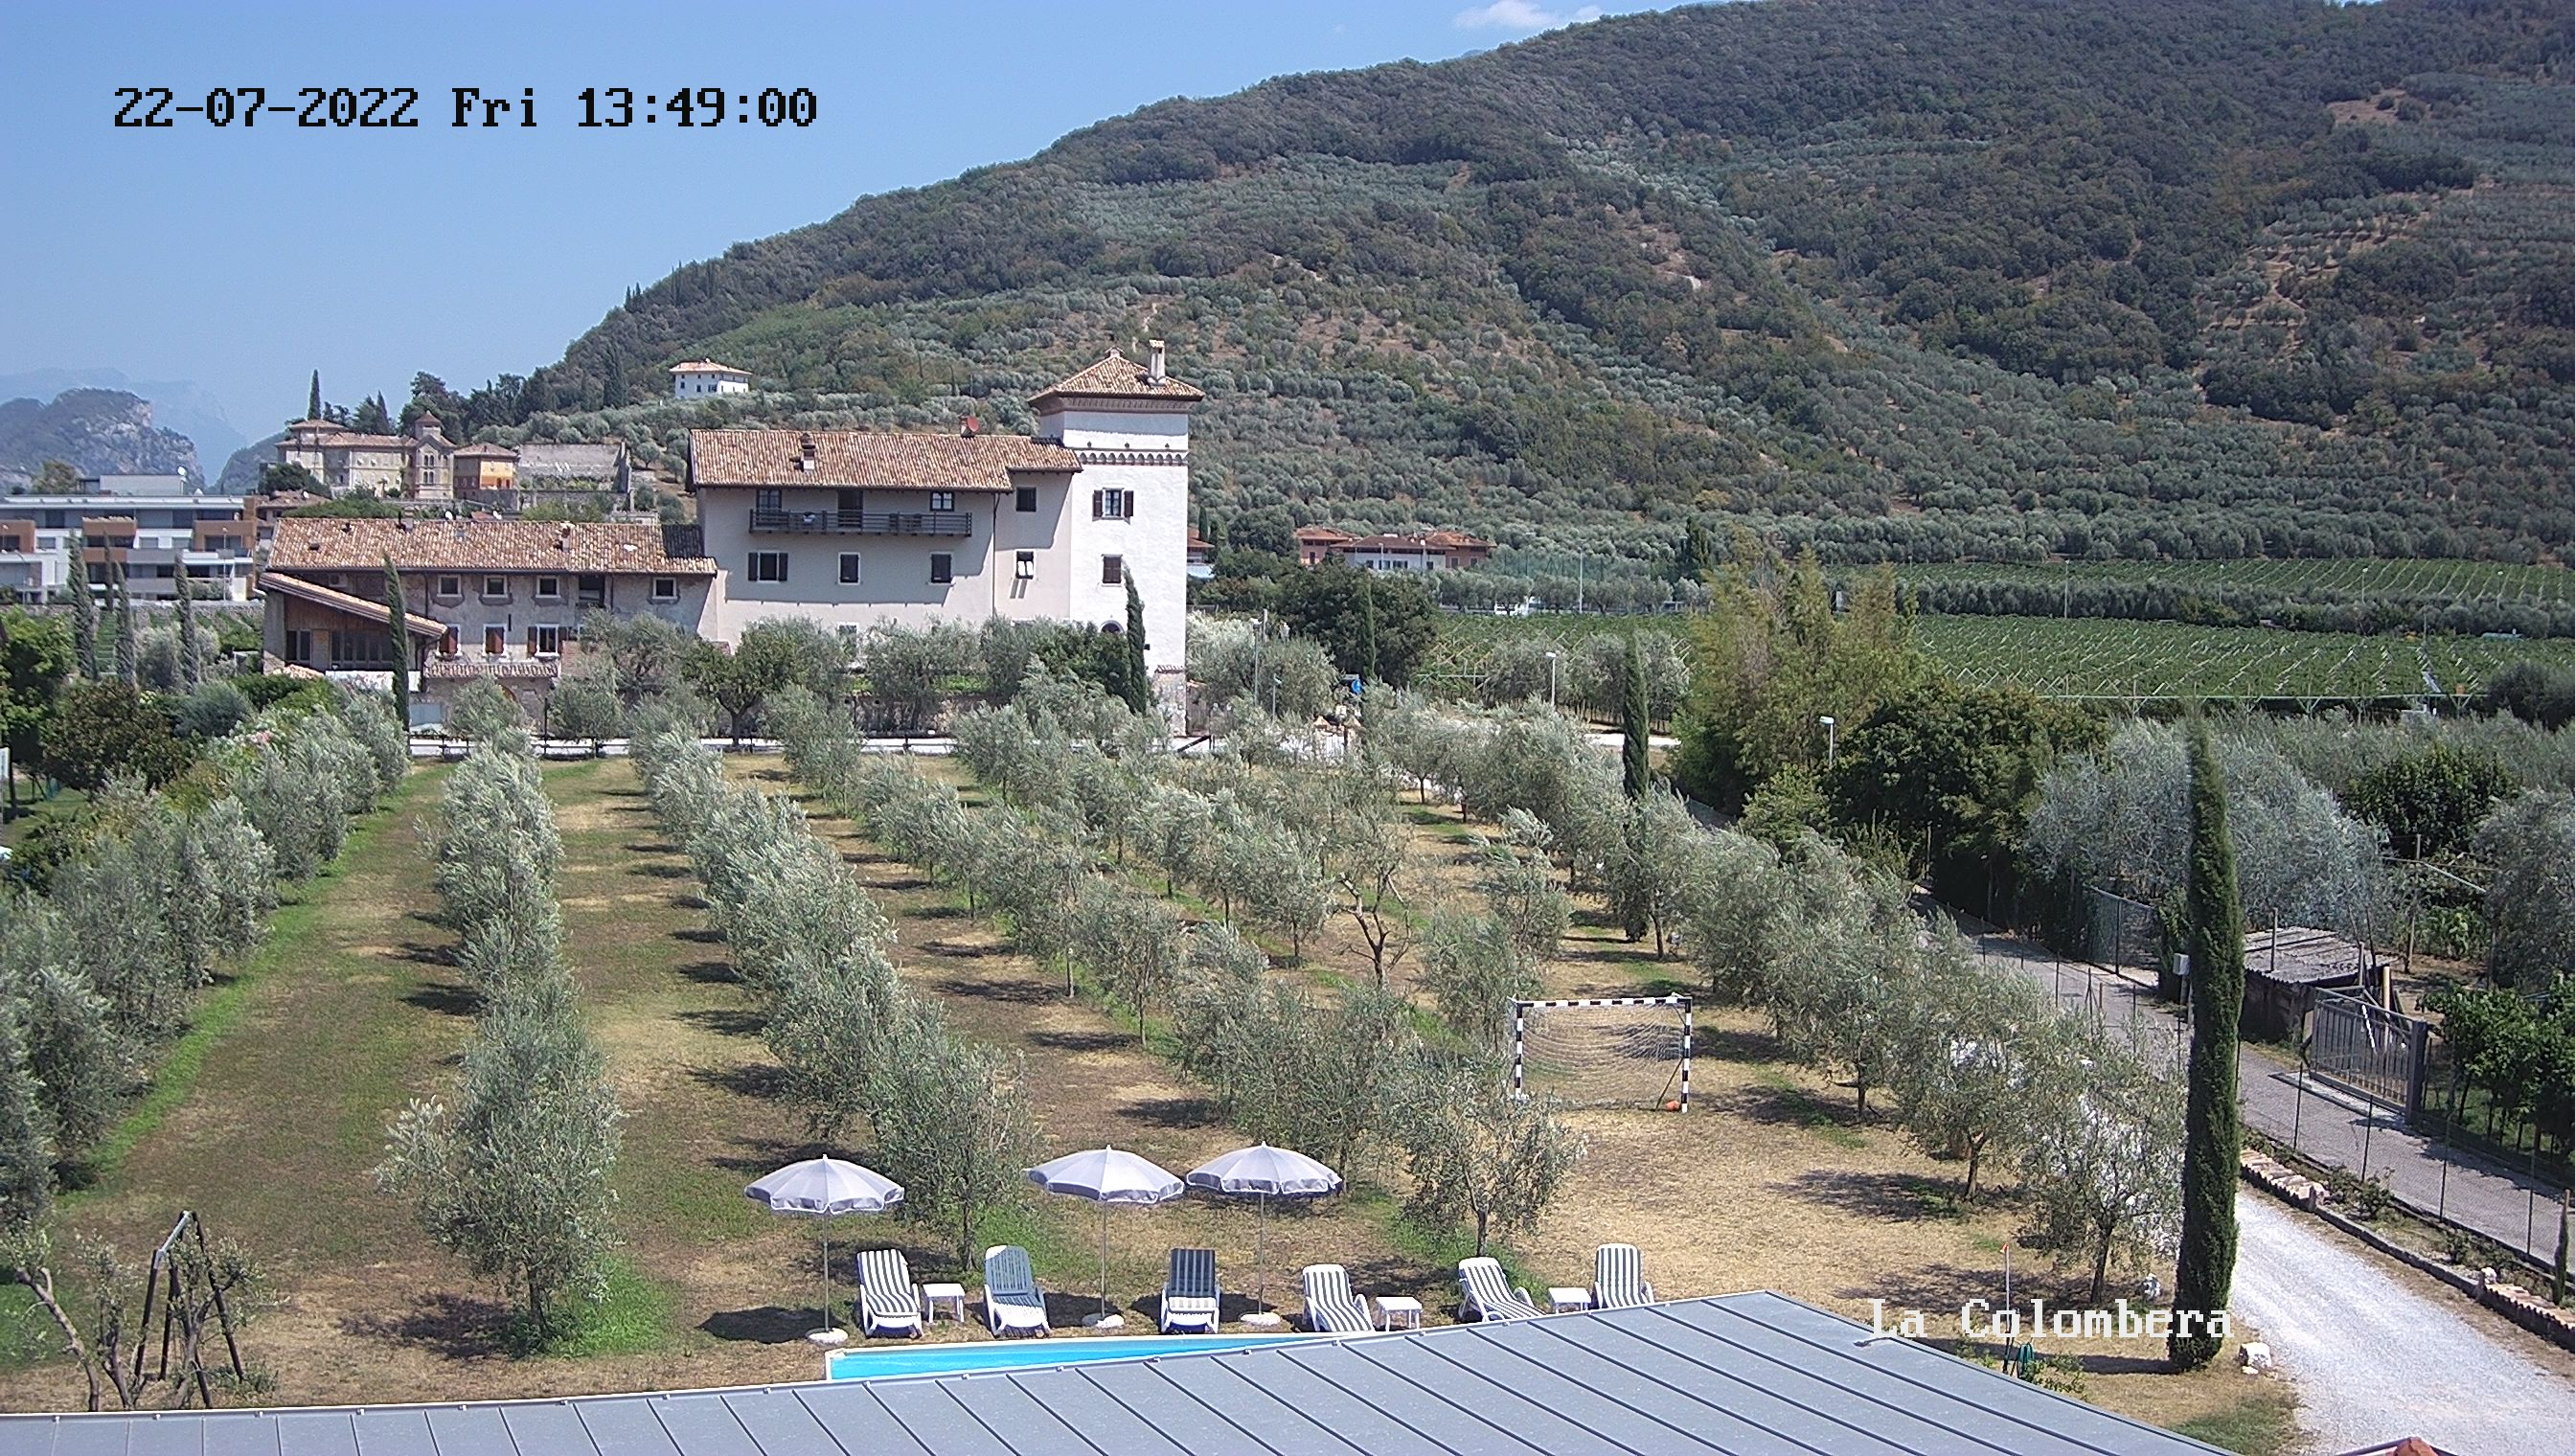 Residence La Colombera - WEBCAM